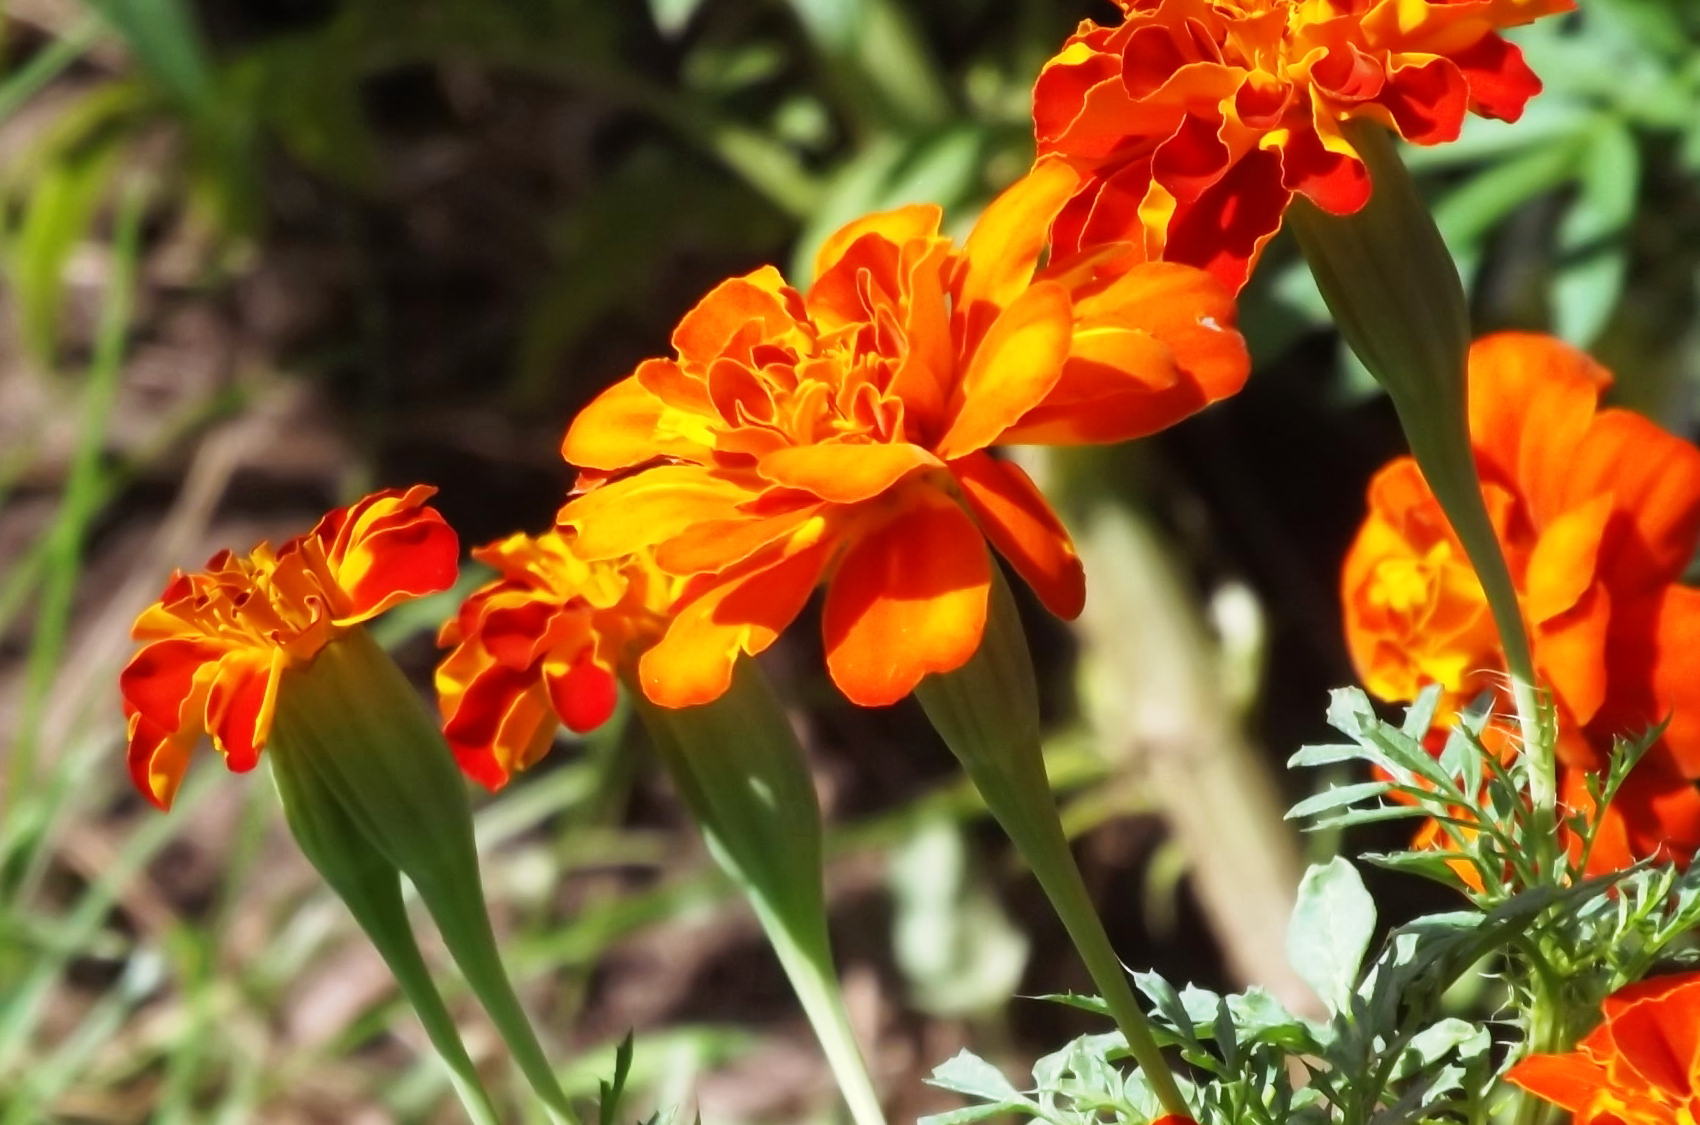 orange marigolds in the sun